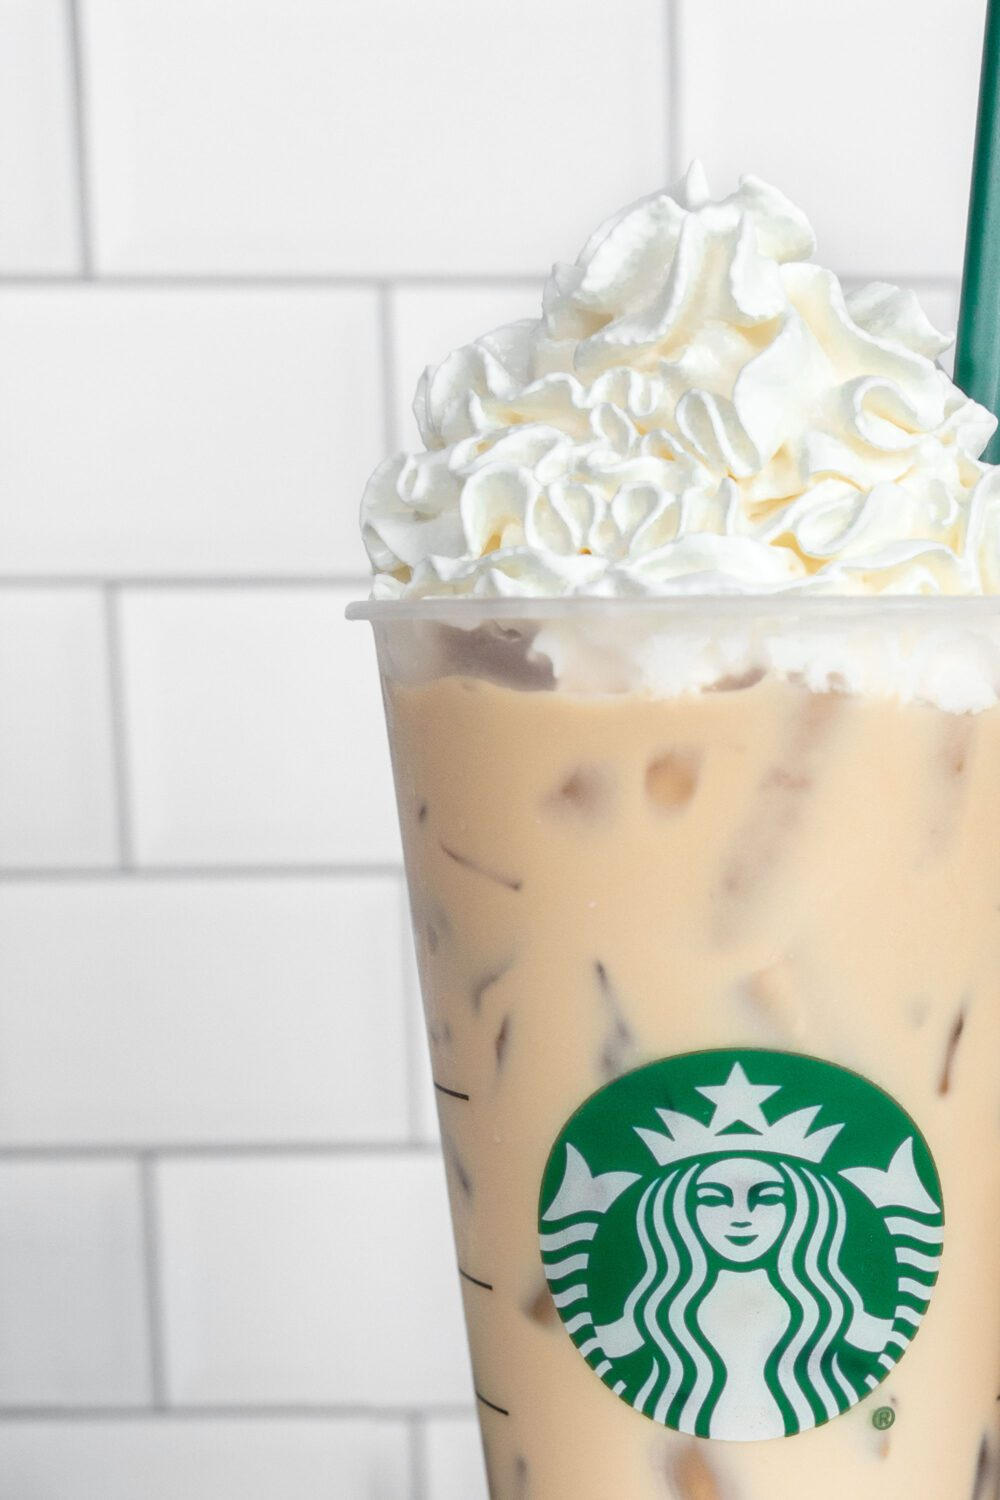 close up of starbucks cup with whipped cream